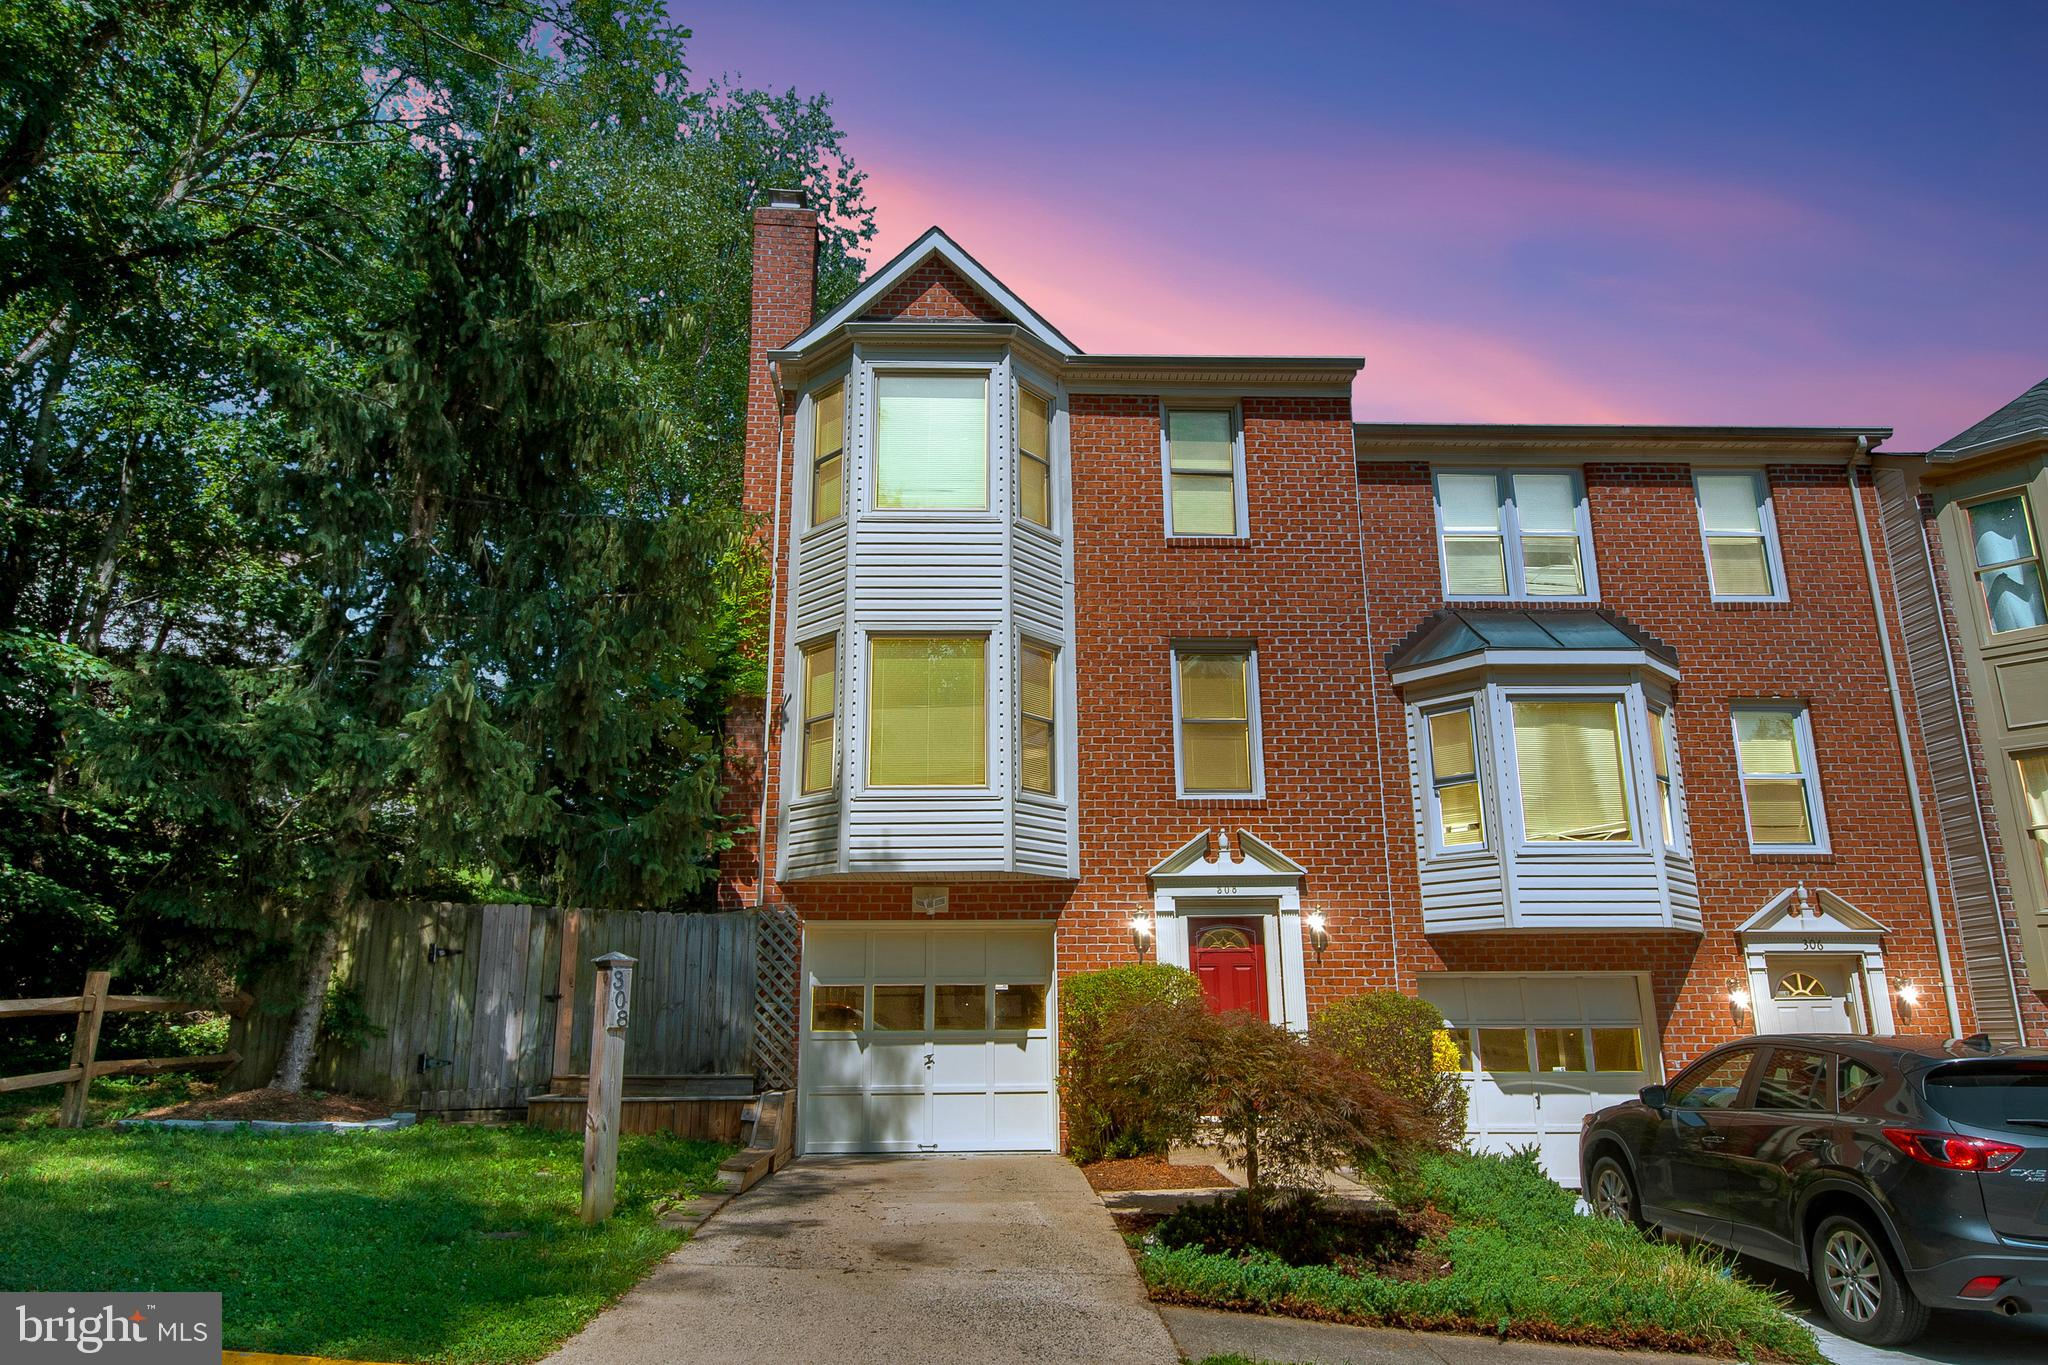 """Welcome home to this tastefully remodeled townhome in sought after Townes of Ashleigh!! Close to Quantico, a commuter's dream!  This three level END UNIT will meet all of your """"move-in ready"""" check boxes. If you are looking for something with low maintenance and shows true pride of ownership, look no further. These original owners have spared no expense. Some of the upgrades include a new 25 year shingle roof (2019), whole home was freshly painted, double-hung Pella windows and exterior Pella doors, maintenance free clad siding, high-end granite countertops in kitchen and all bathrooms, all new appliances throughout, a gorgeous cedar closet and much more. The master bathroom is CAPTIVATING with gorgeous tile throughout and an oversized rainfall shower. This home is EXTREMELY spacious as the original home was built with a much larger footprint compared to other homes in the community.  Last but not least, the backyard is wooded and will be your own private oasis!!SELLER GAVE NOTICE TO BUYER _PENDING RELEASE  ?"""